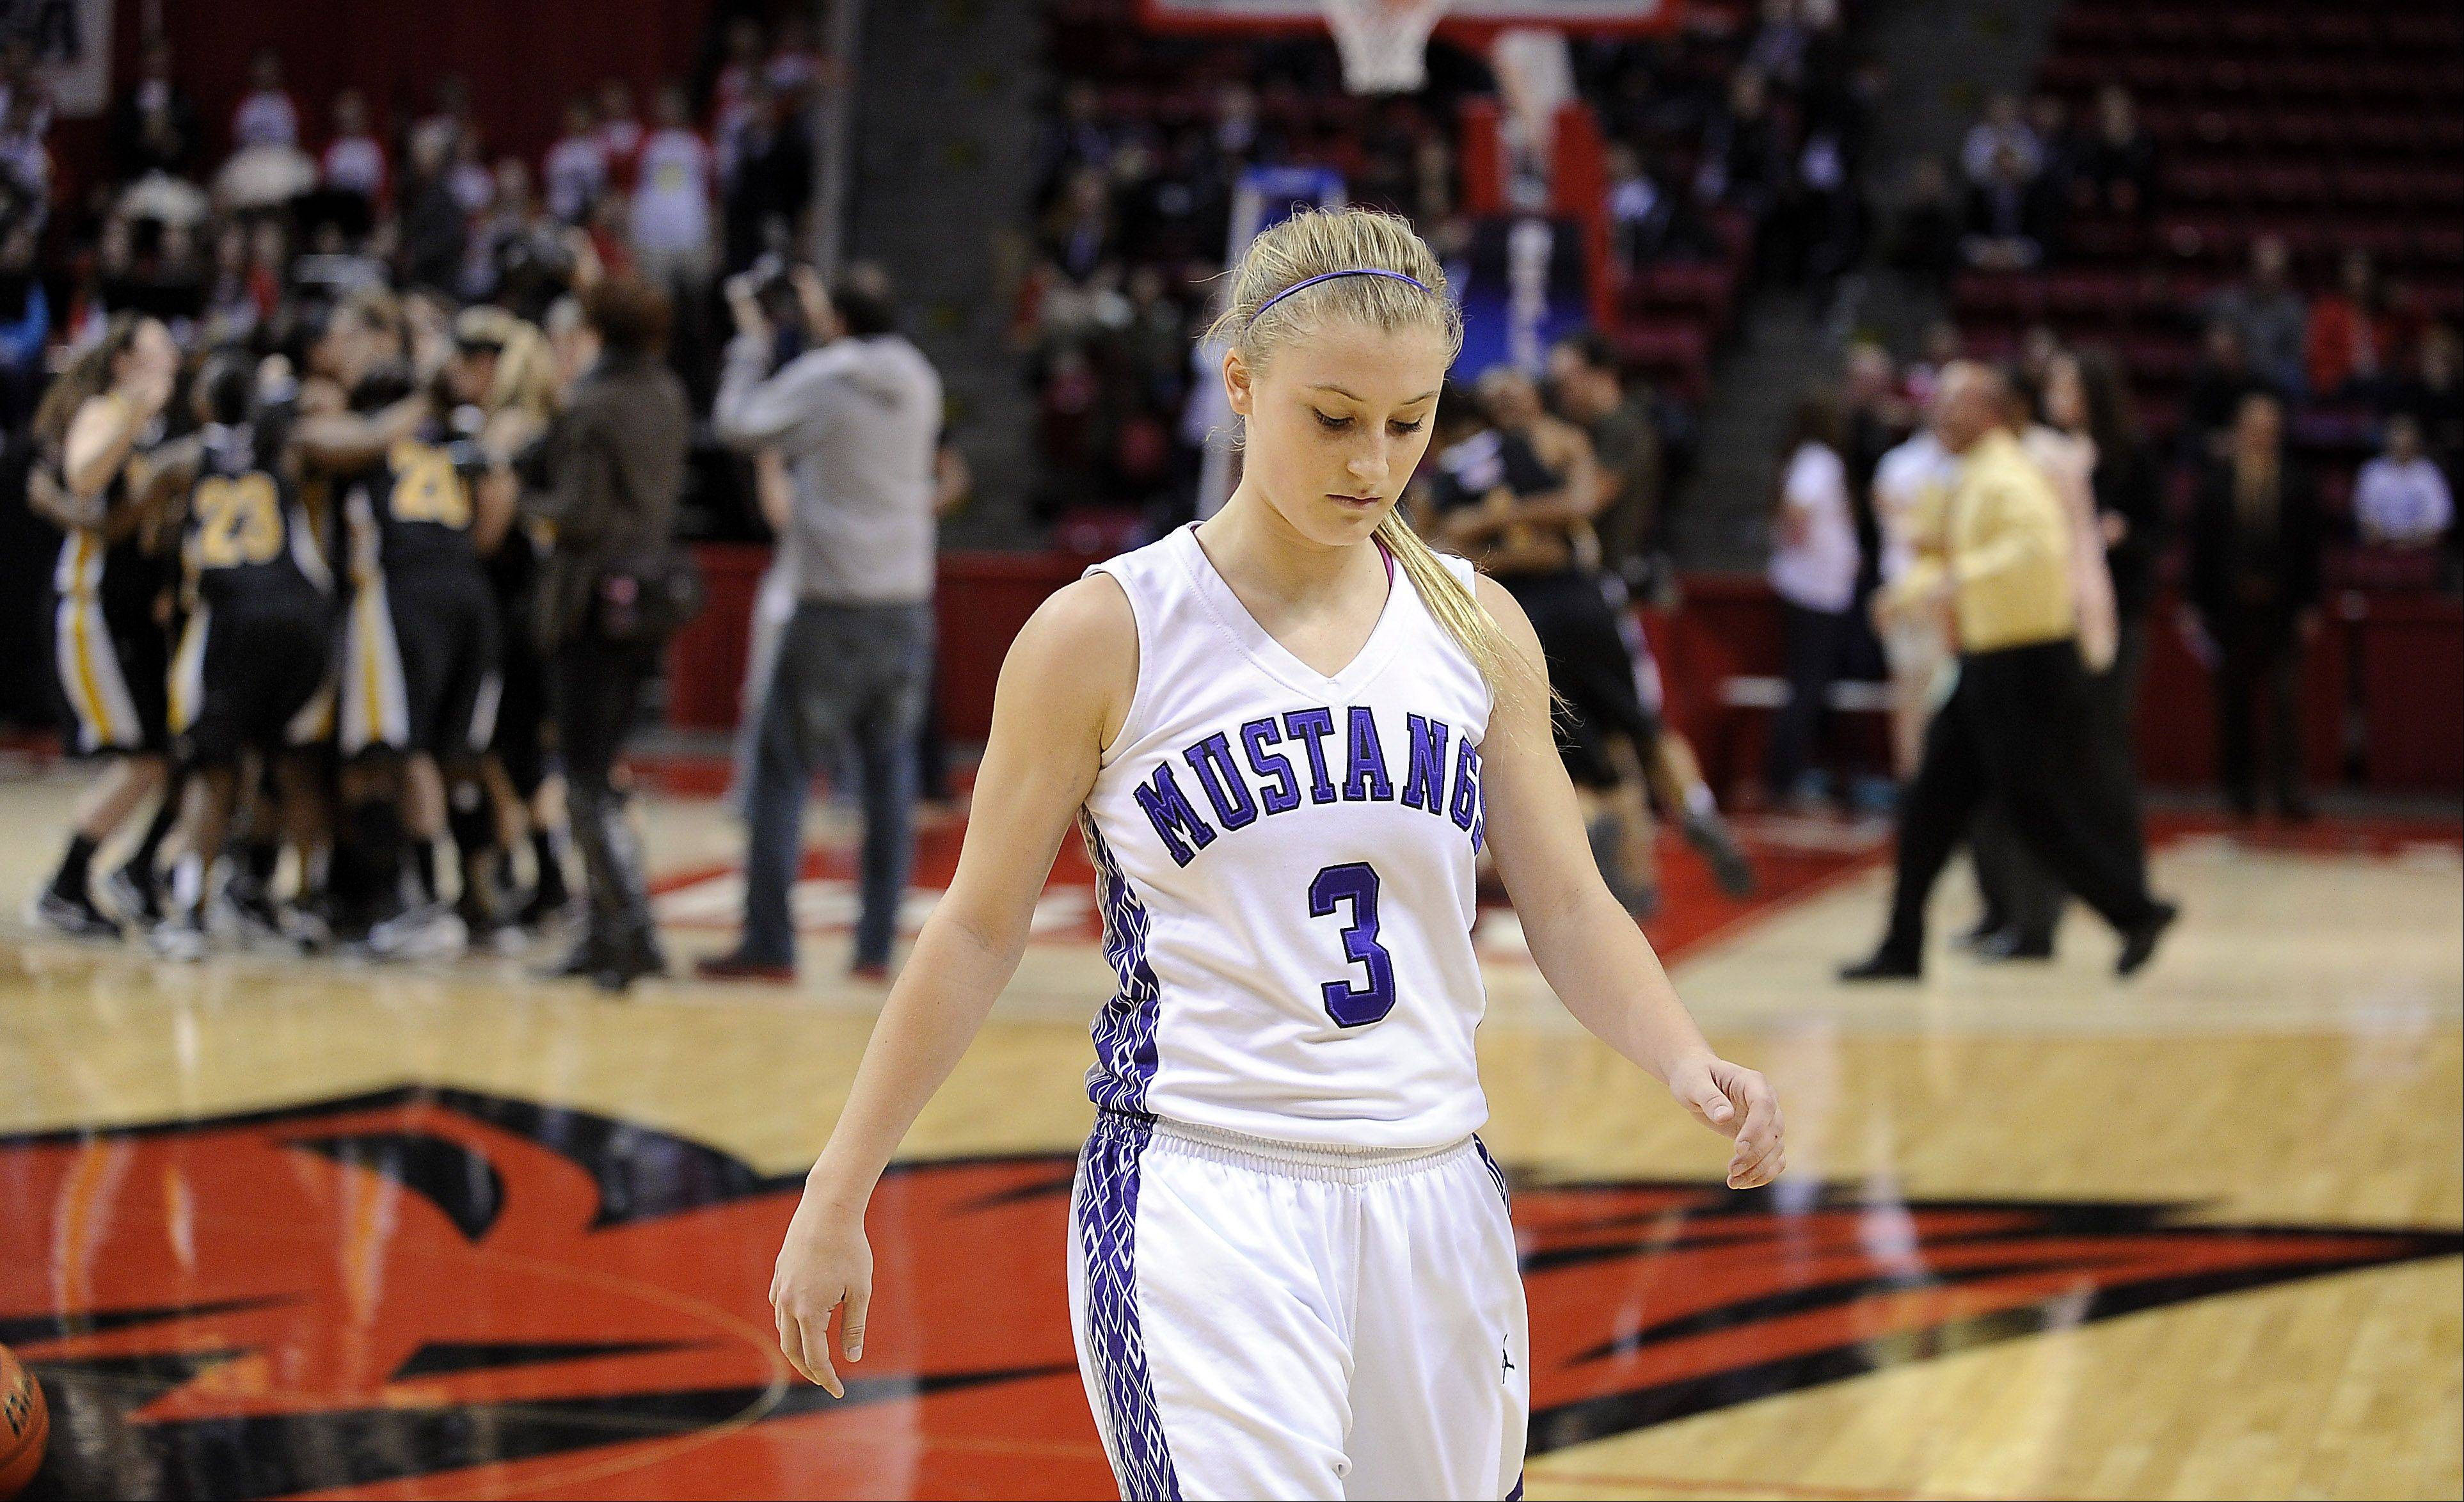 Rolling Meadows Jackie Kemph walks off the court stunned after a buzzer beater shot by Marian in the final second in the Class 4A 2013 girls basketball championship game in Normal on Saturday.